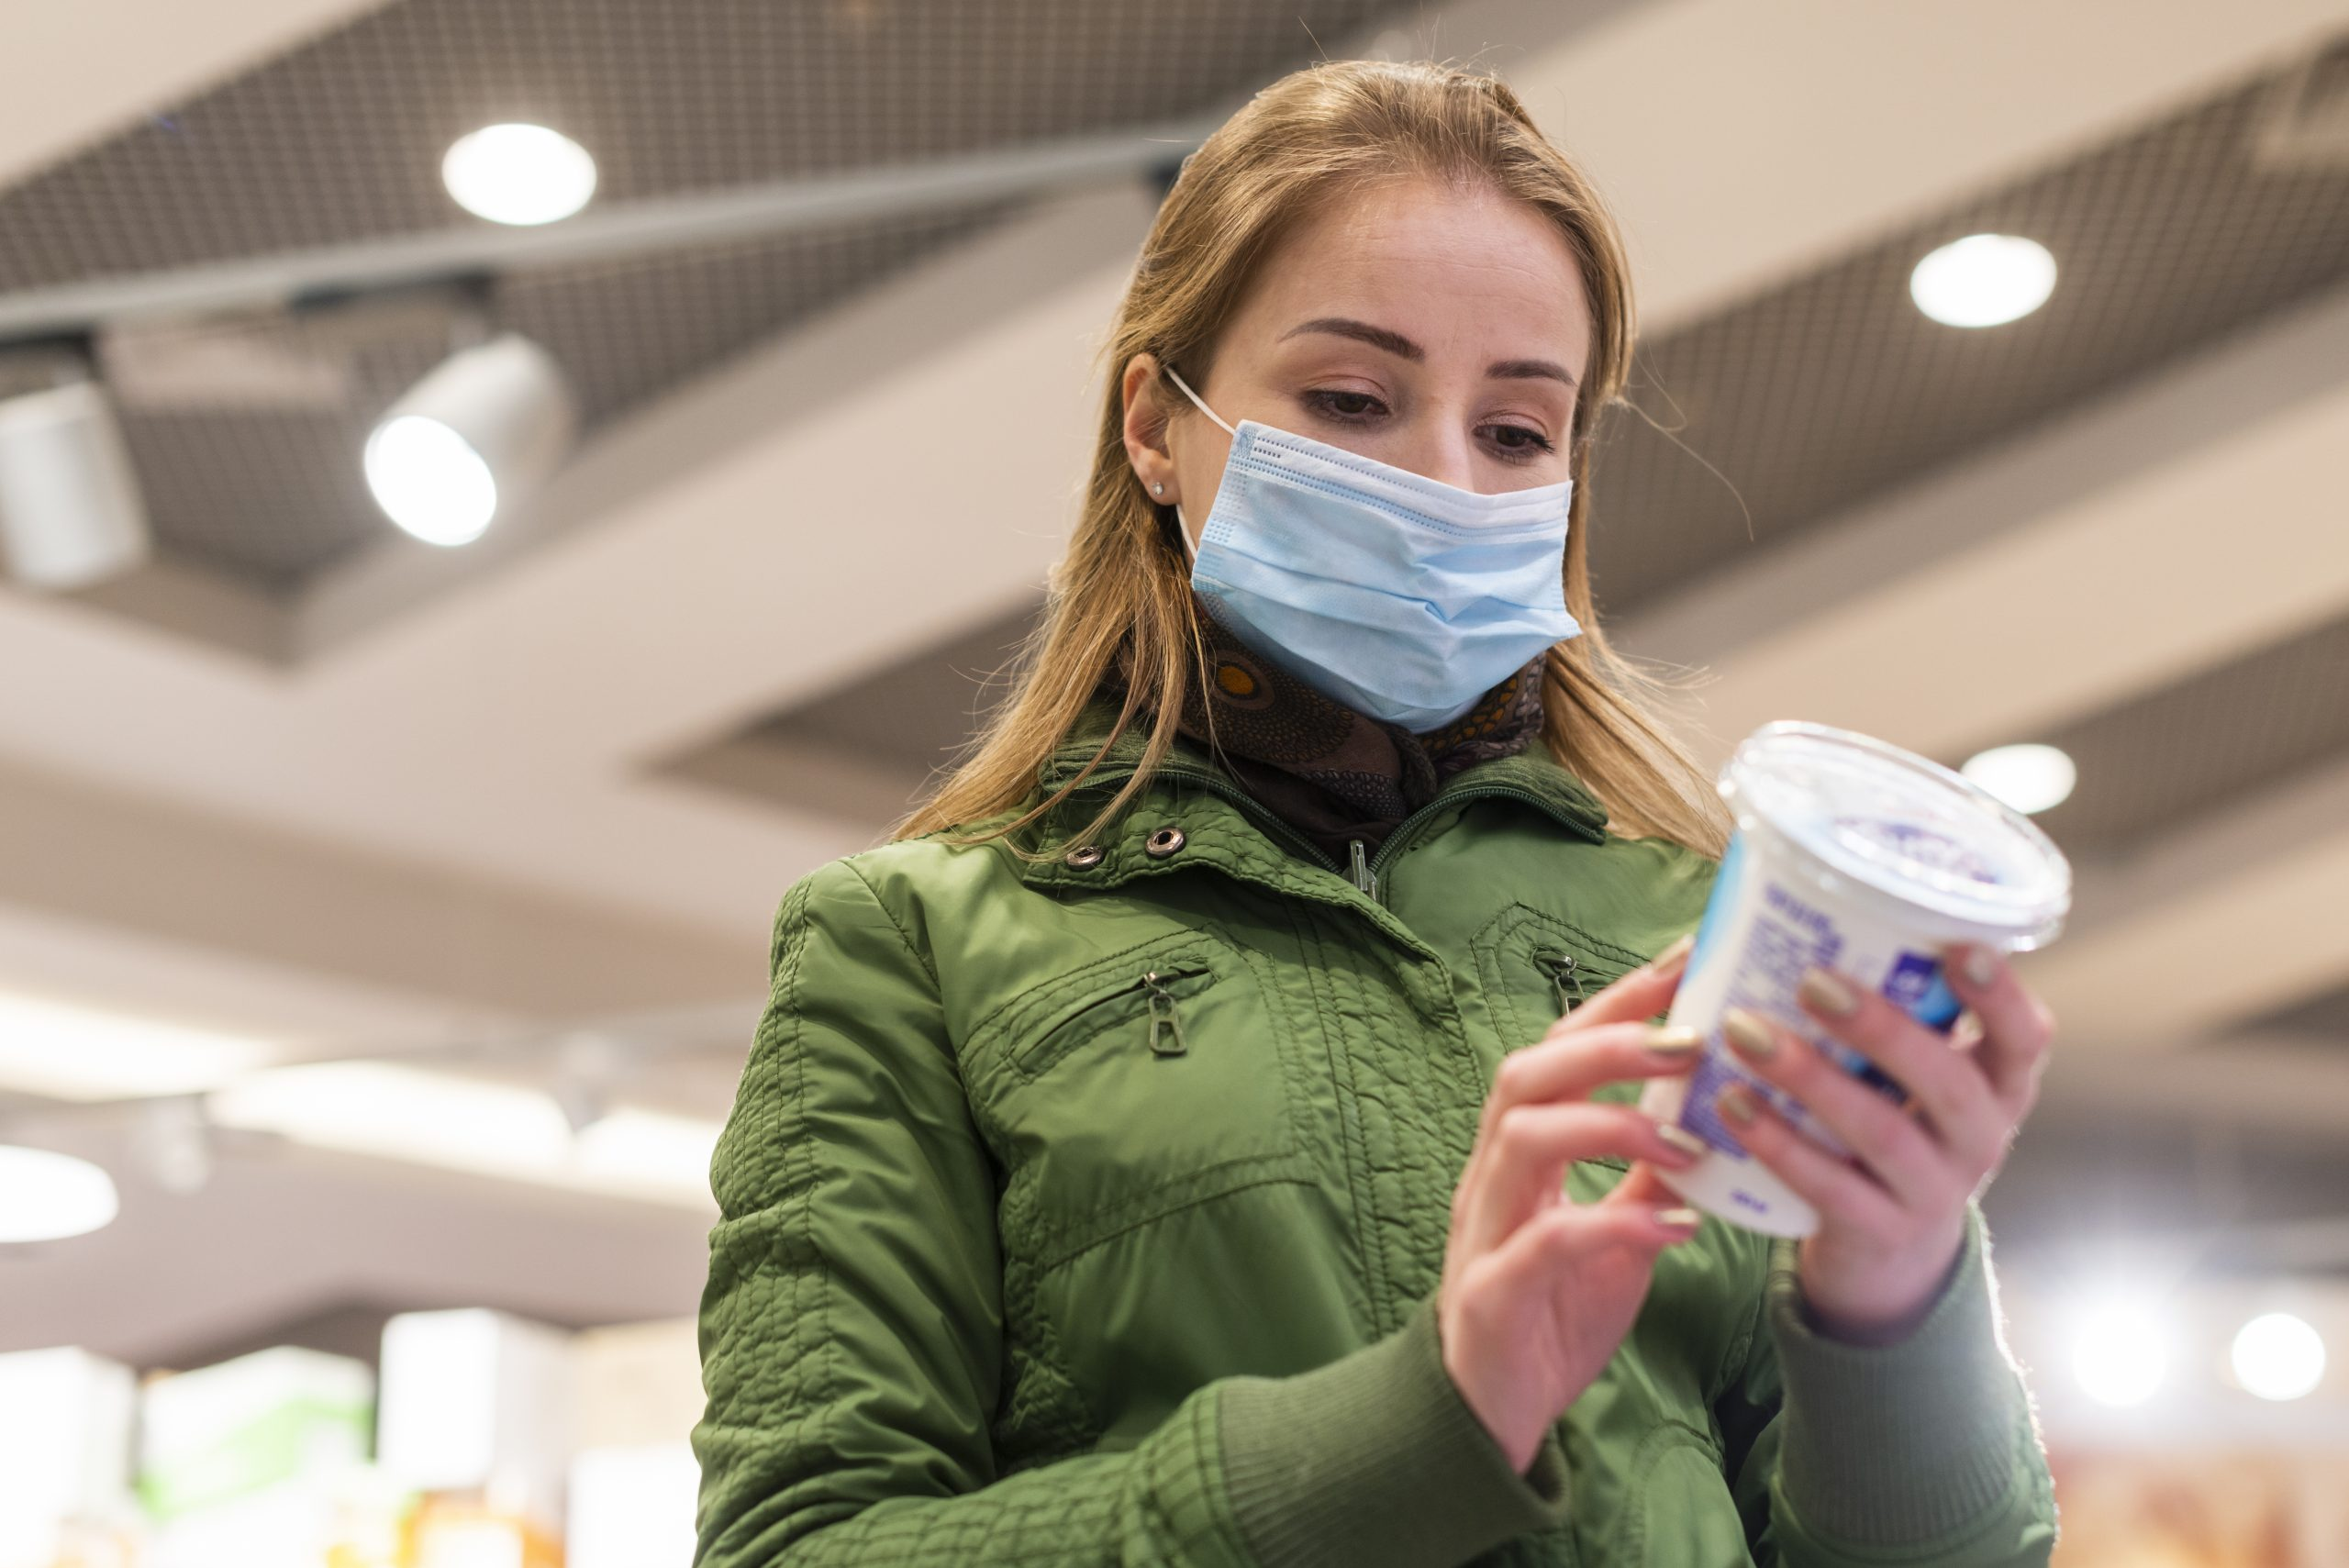 Pandemic forces innovation in packaging field